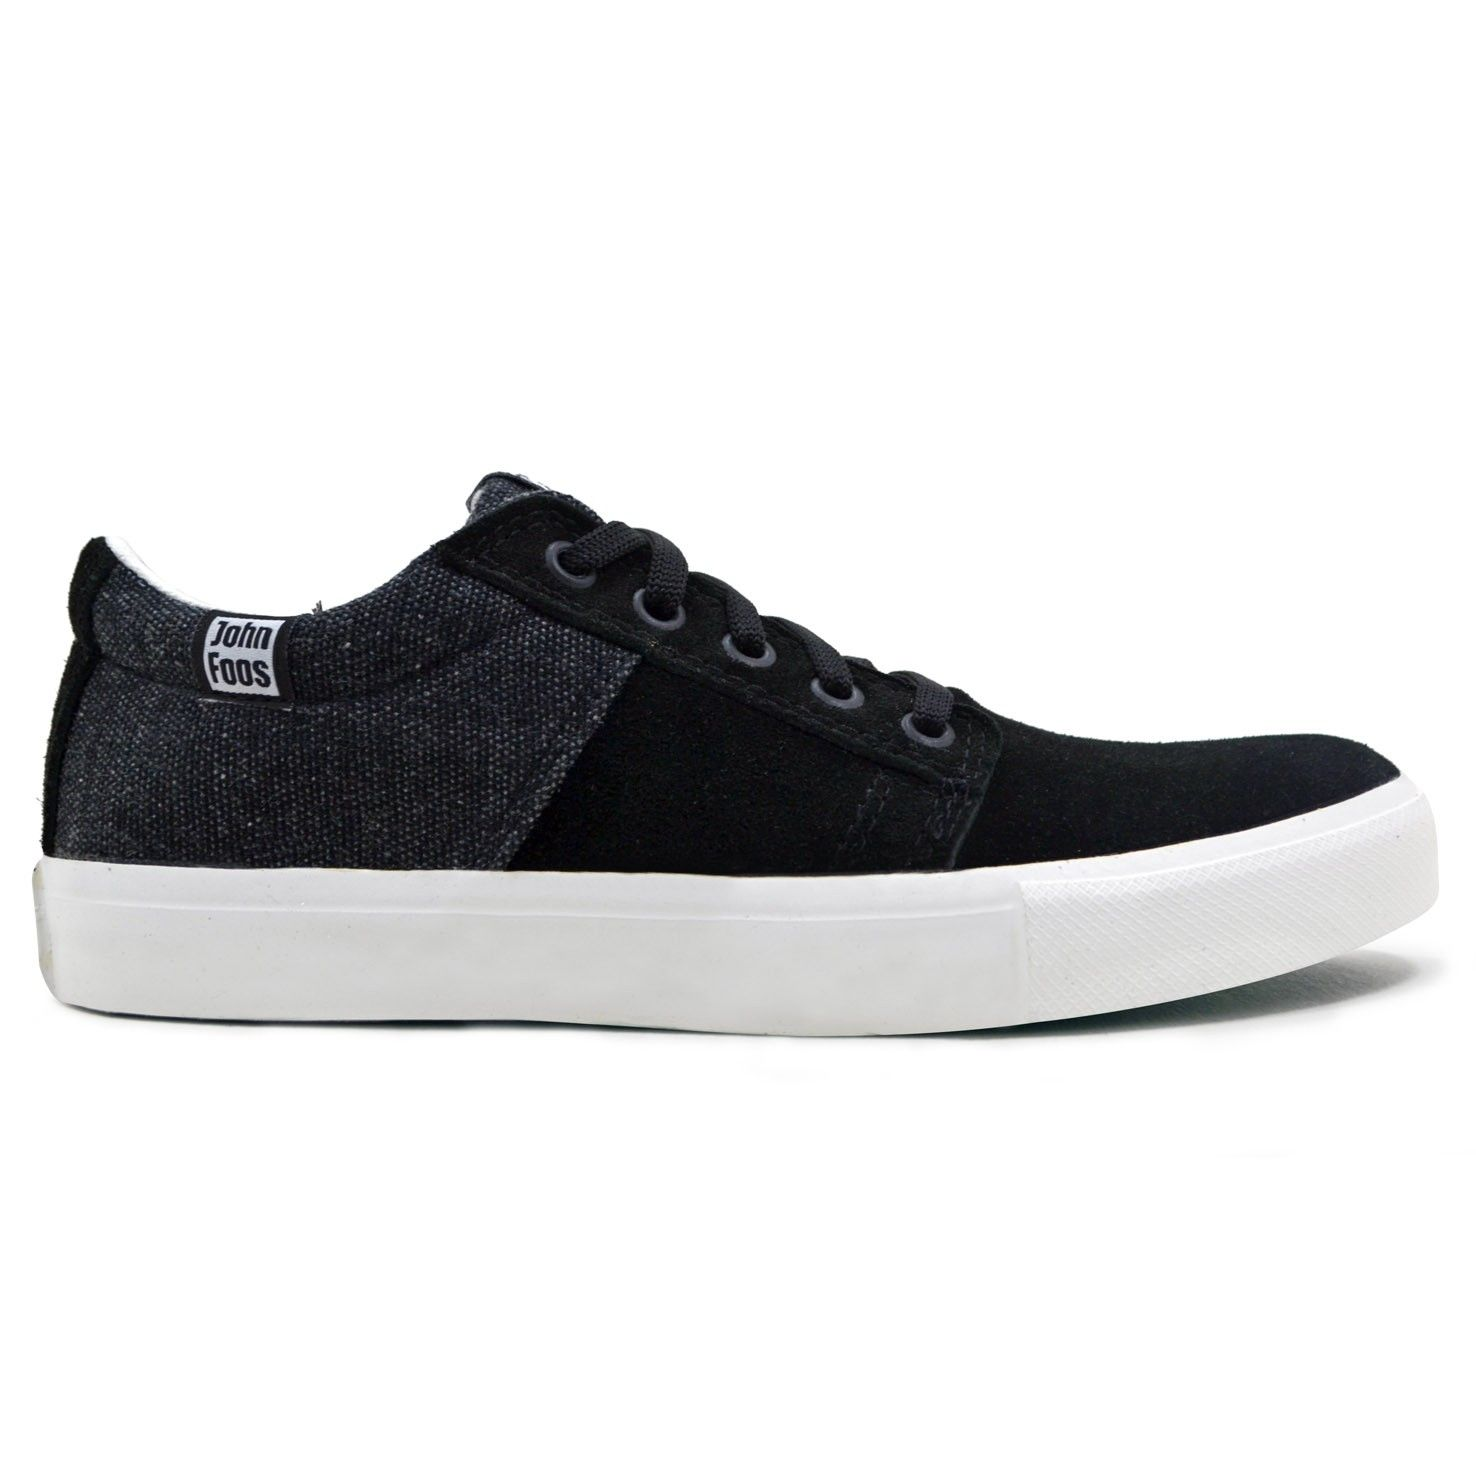 4bbf9ed4f28 John Foos 176 Meet Black Zapatillas